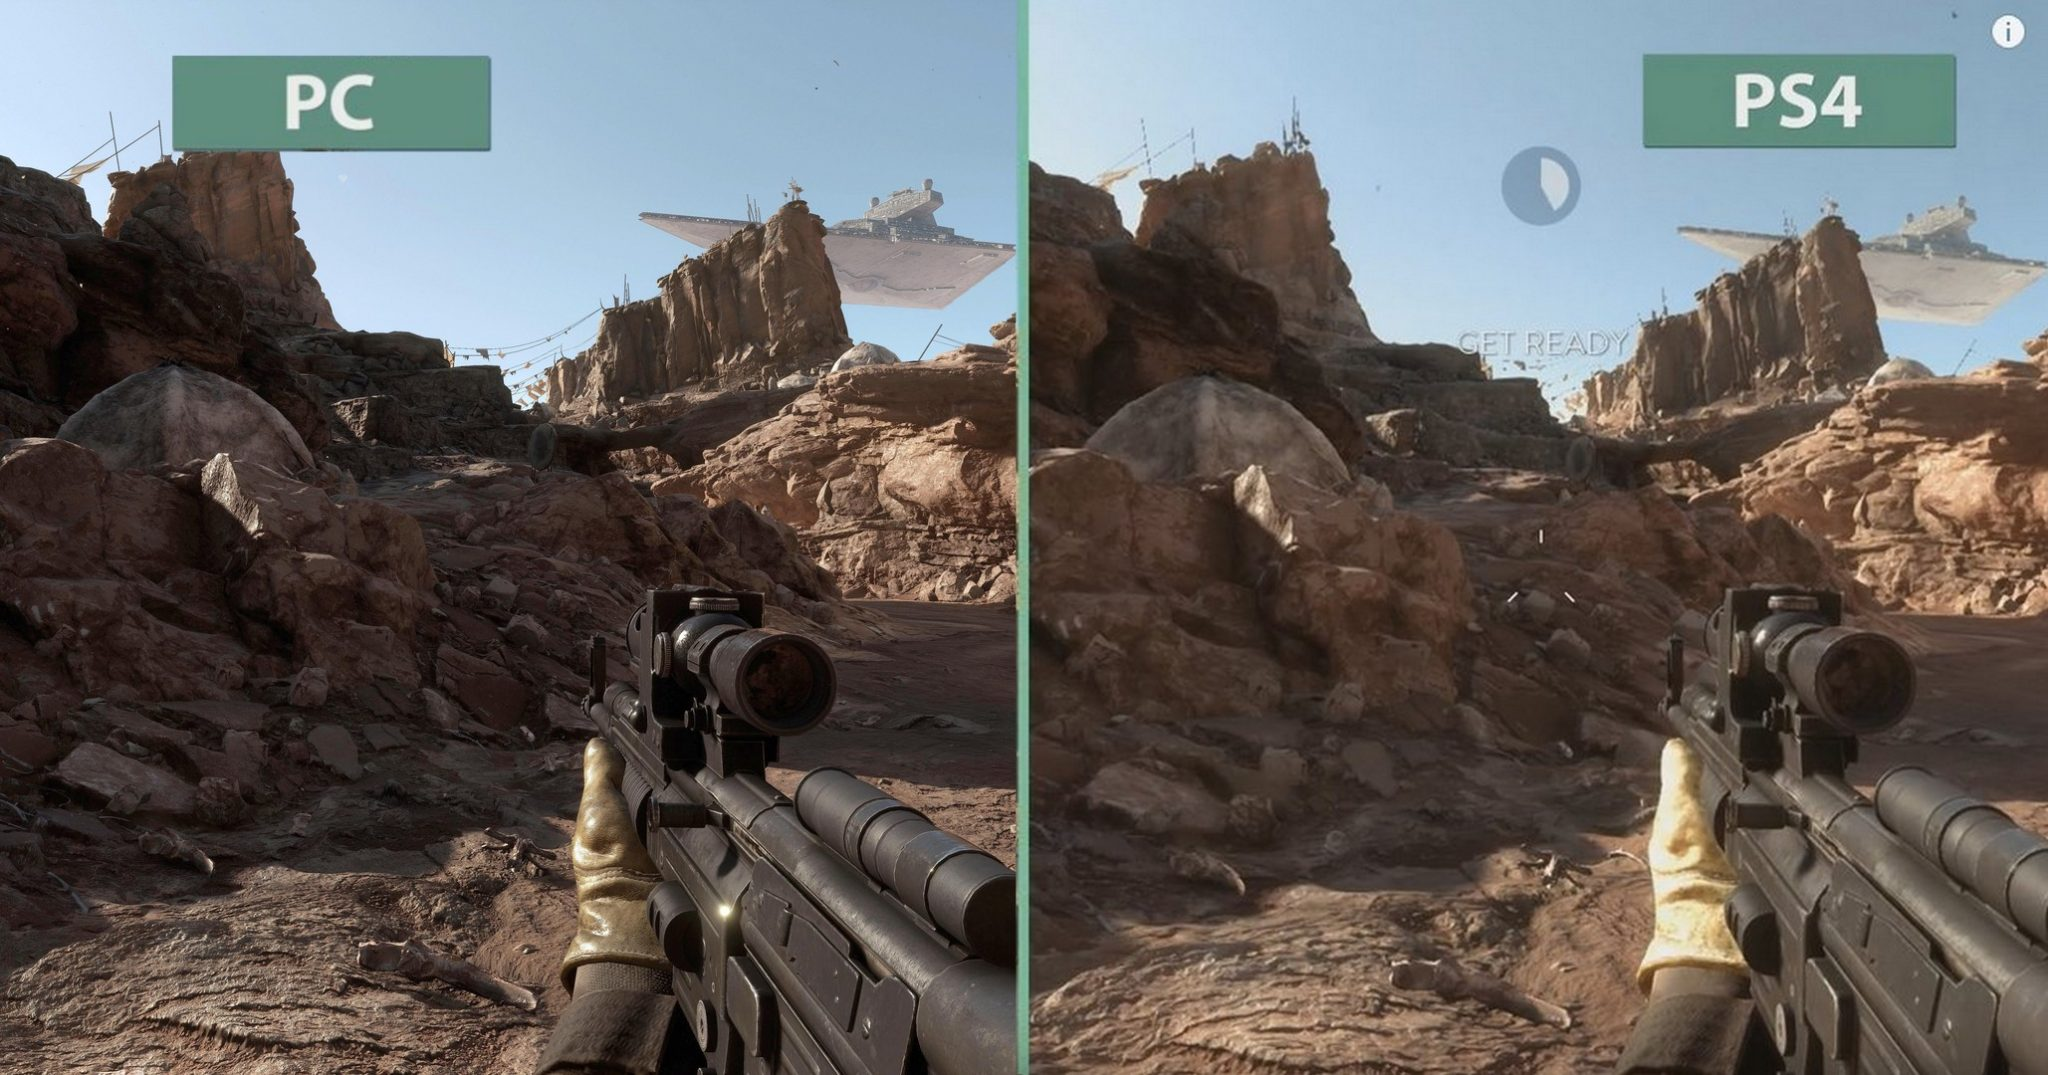 ps4 vs pc graphics